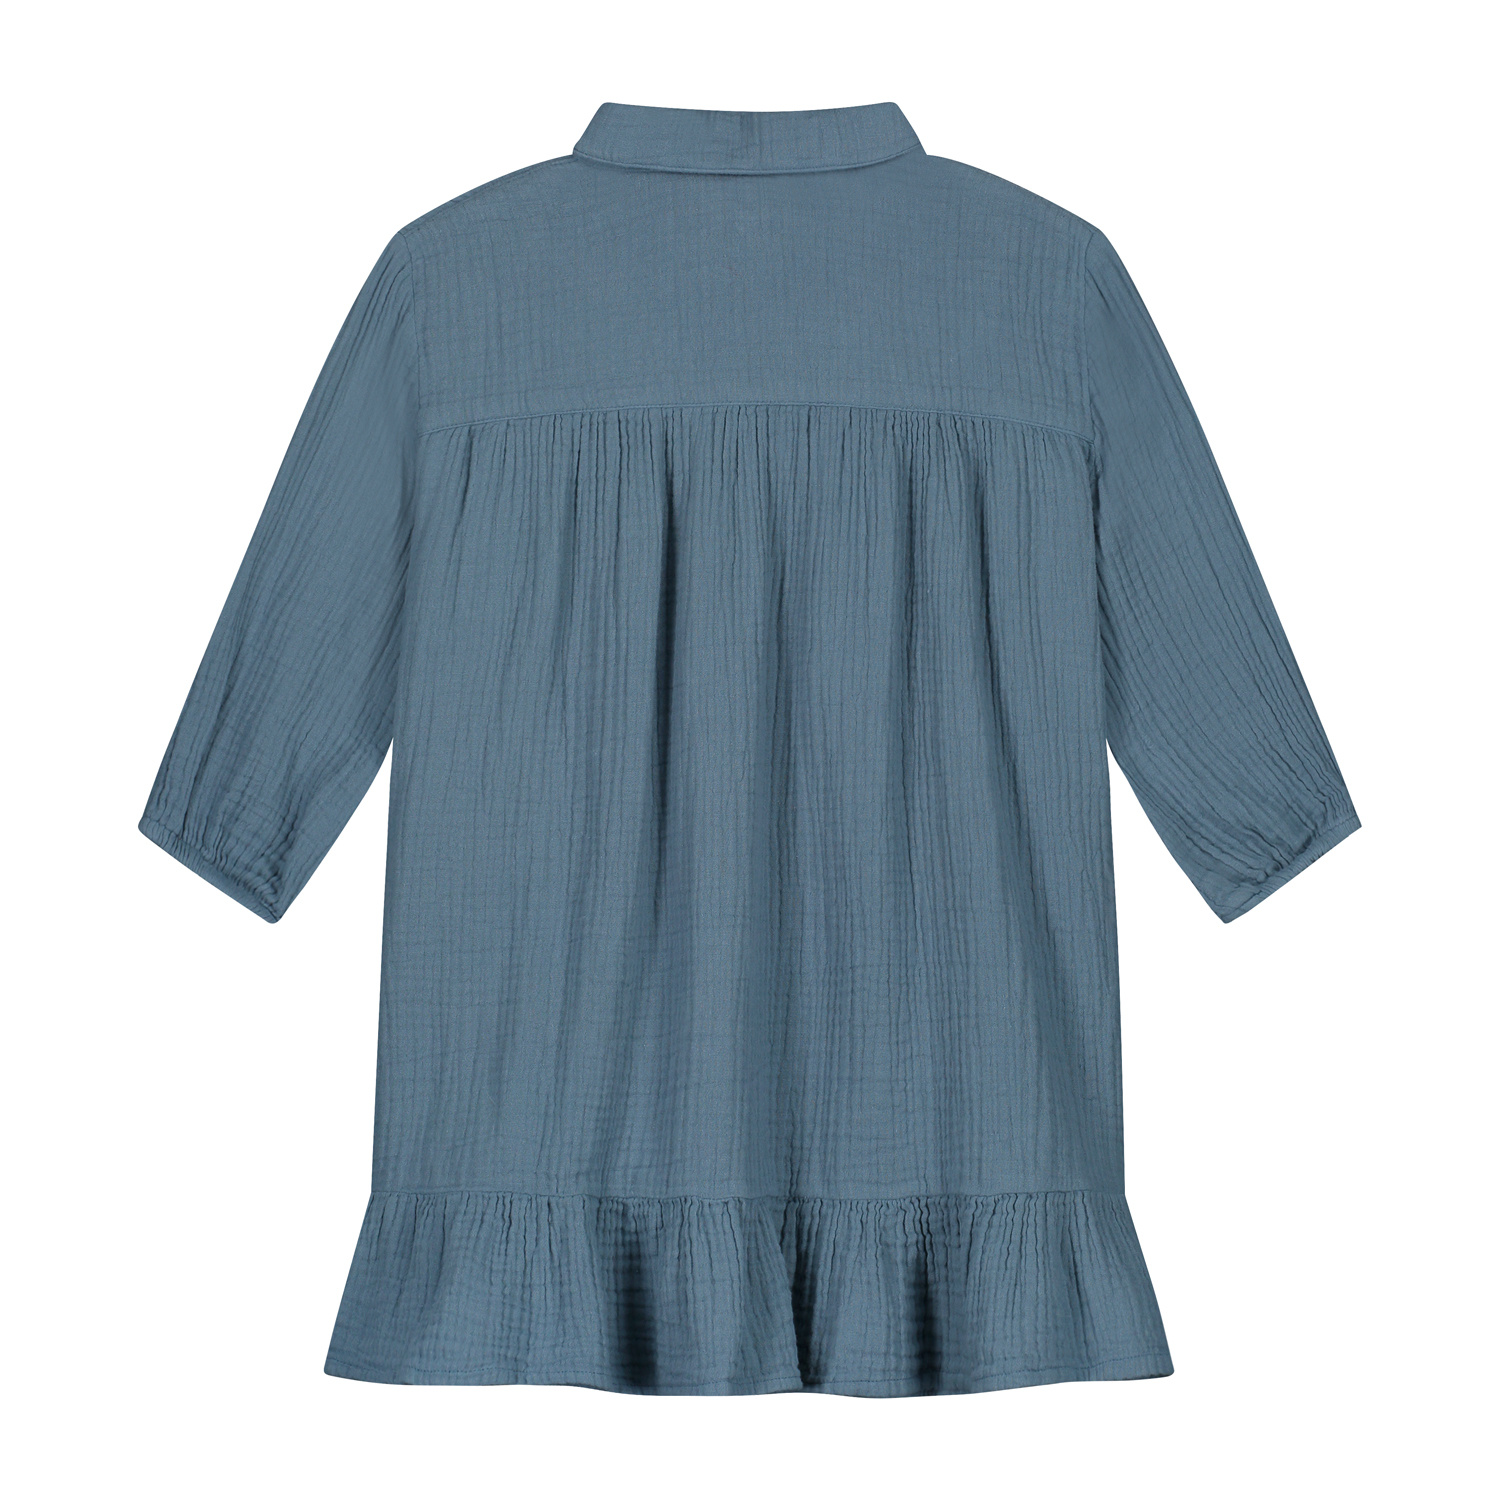 Lilyan dress forest Blue-2